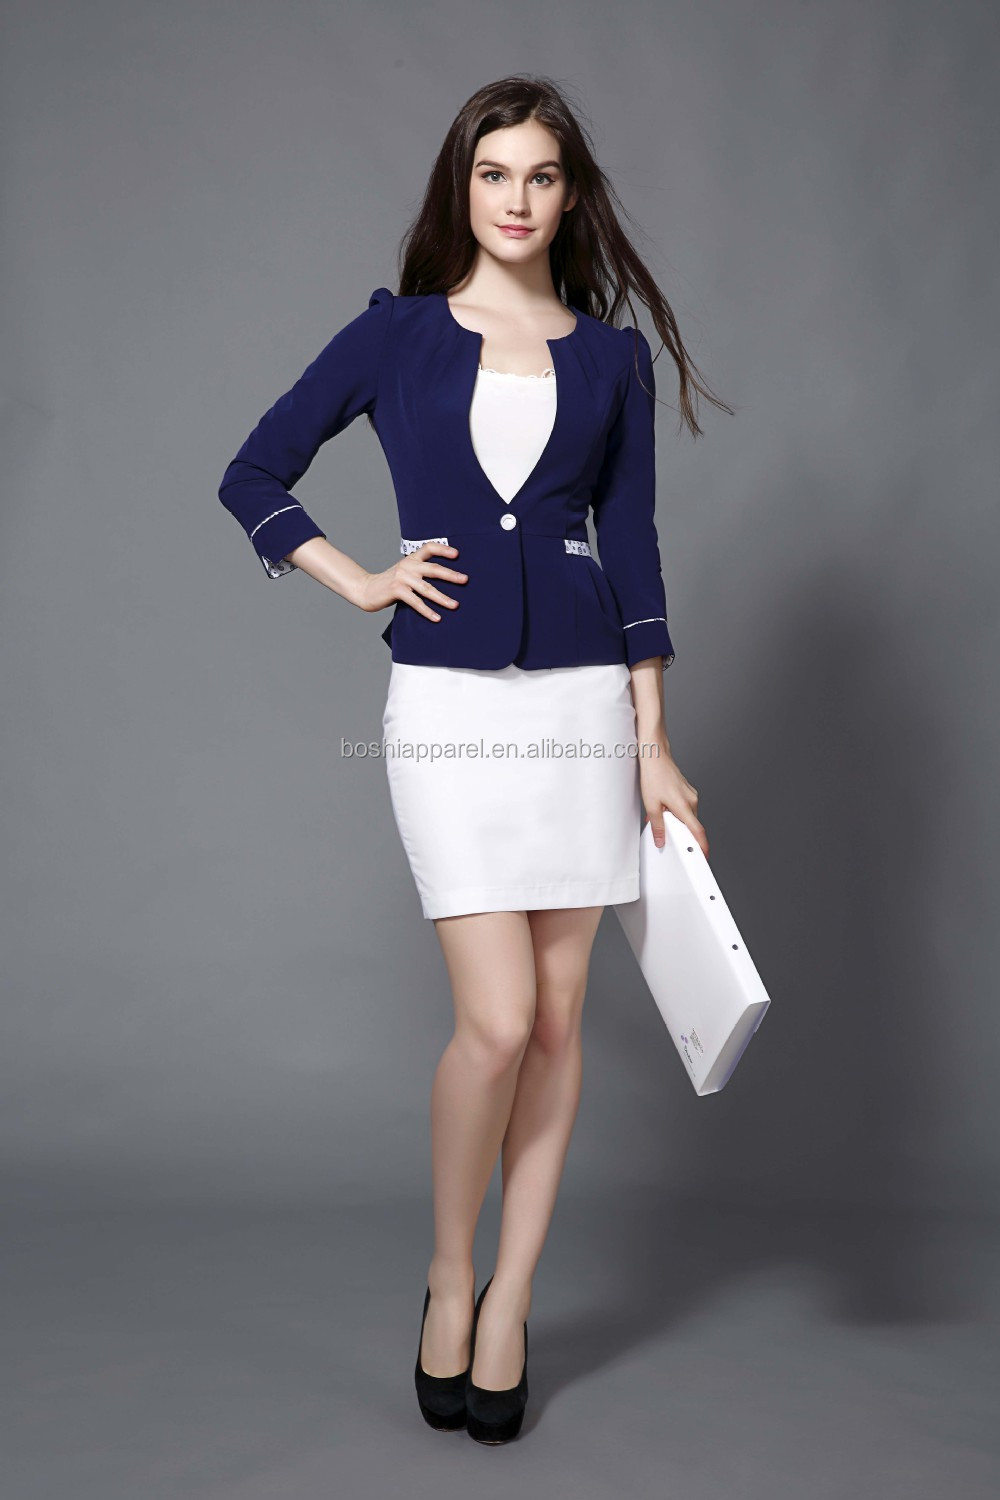 Formal Dress Wear For Ladies Down To Earth Bali